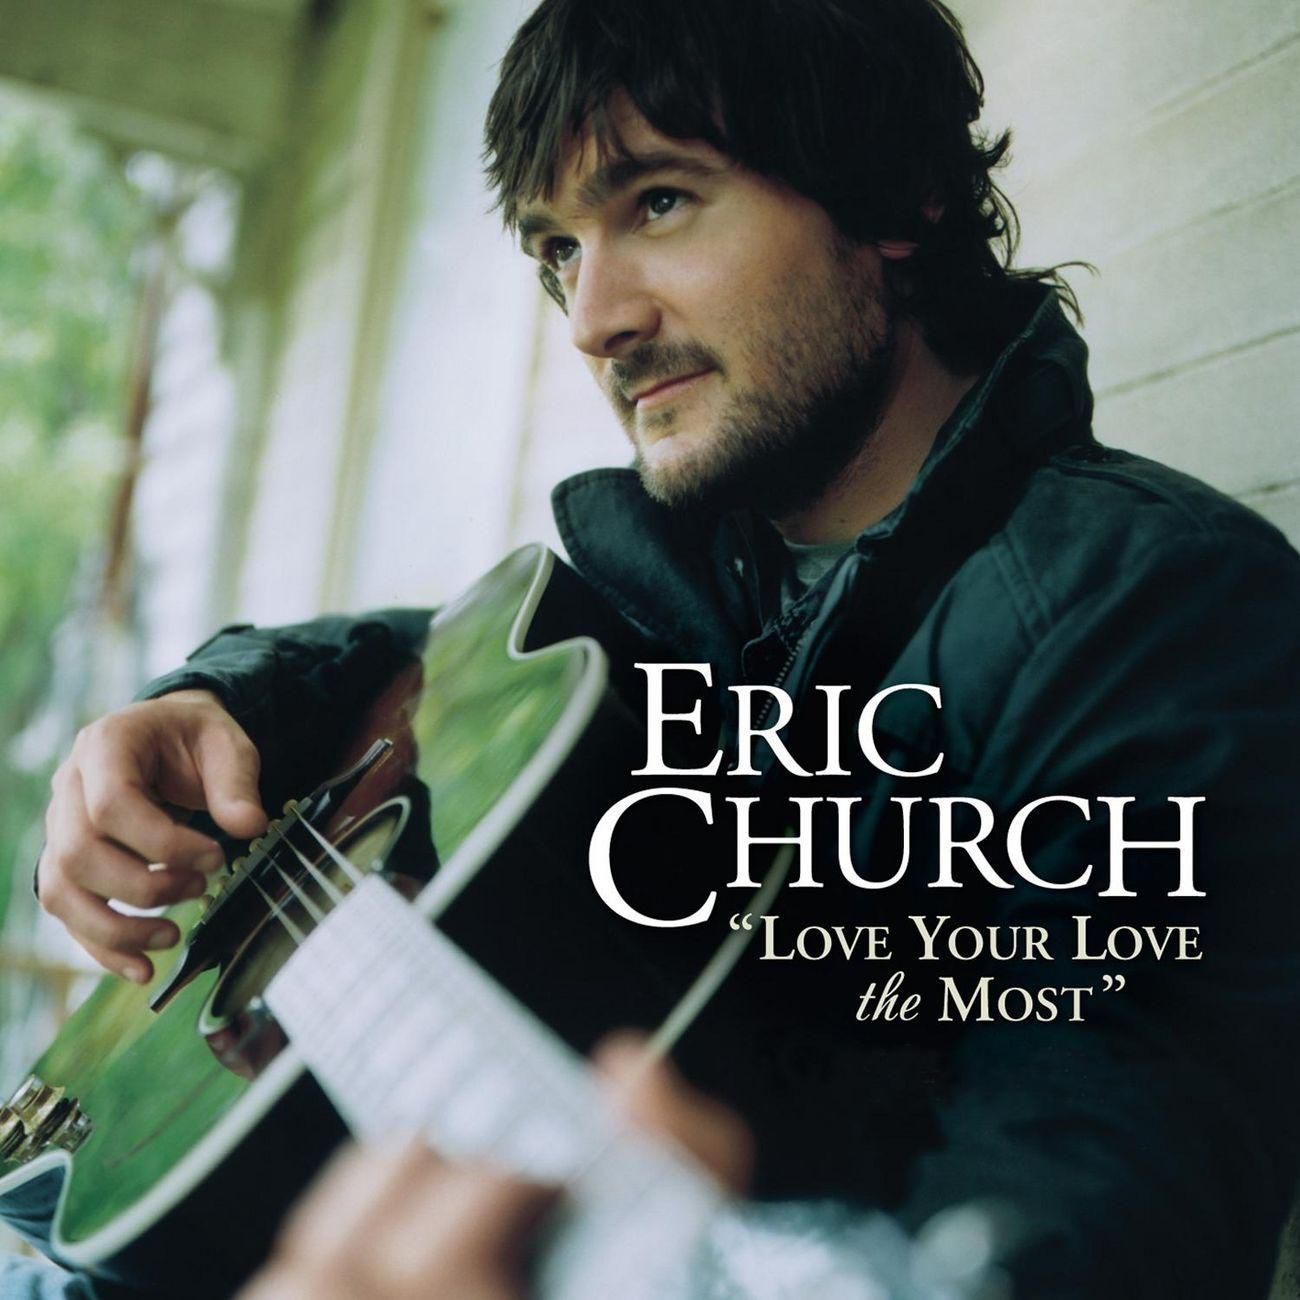 Top 10 First Dance Songs: List Of Top 10 Eric Church Songs